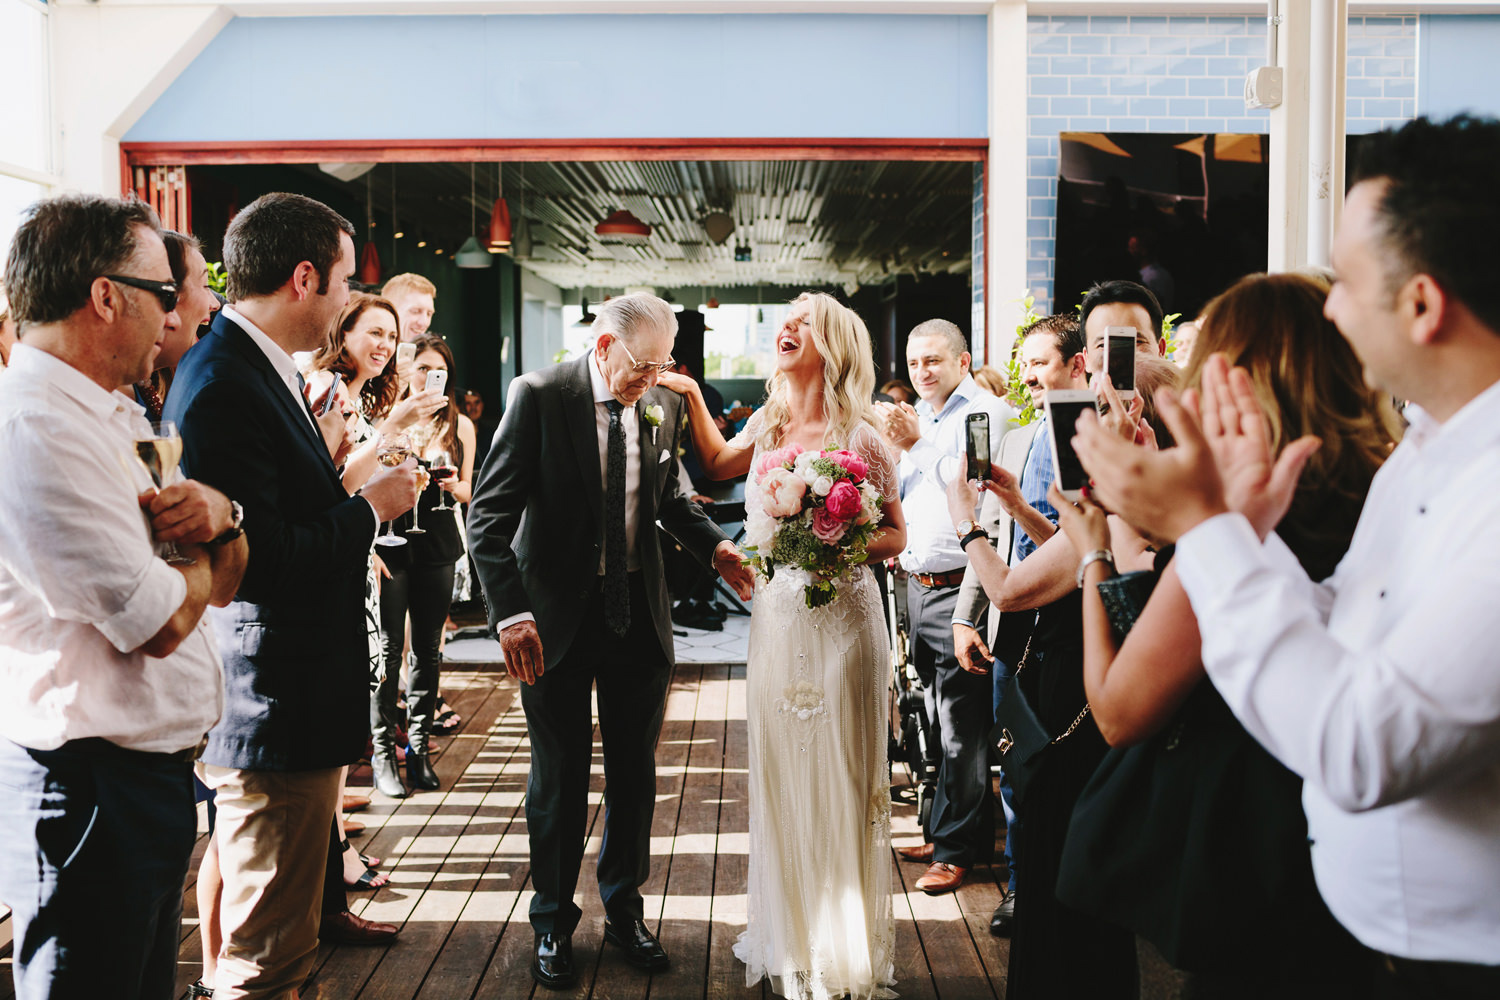 043-Melbourne_Wedding_Photographer_Jonathan_Ong_Best2015.jpg